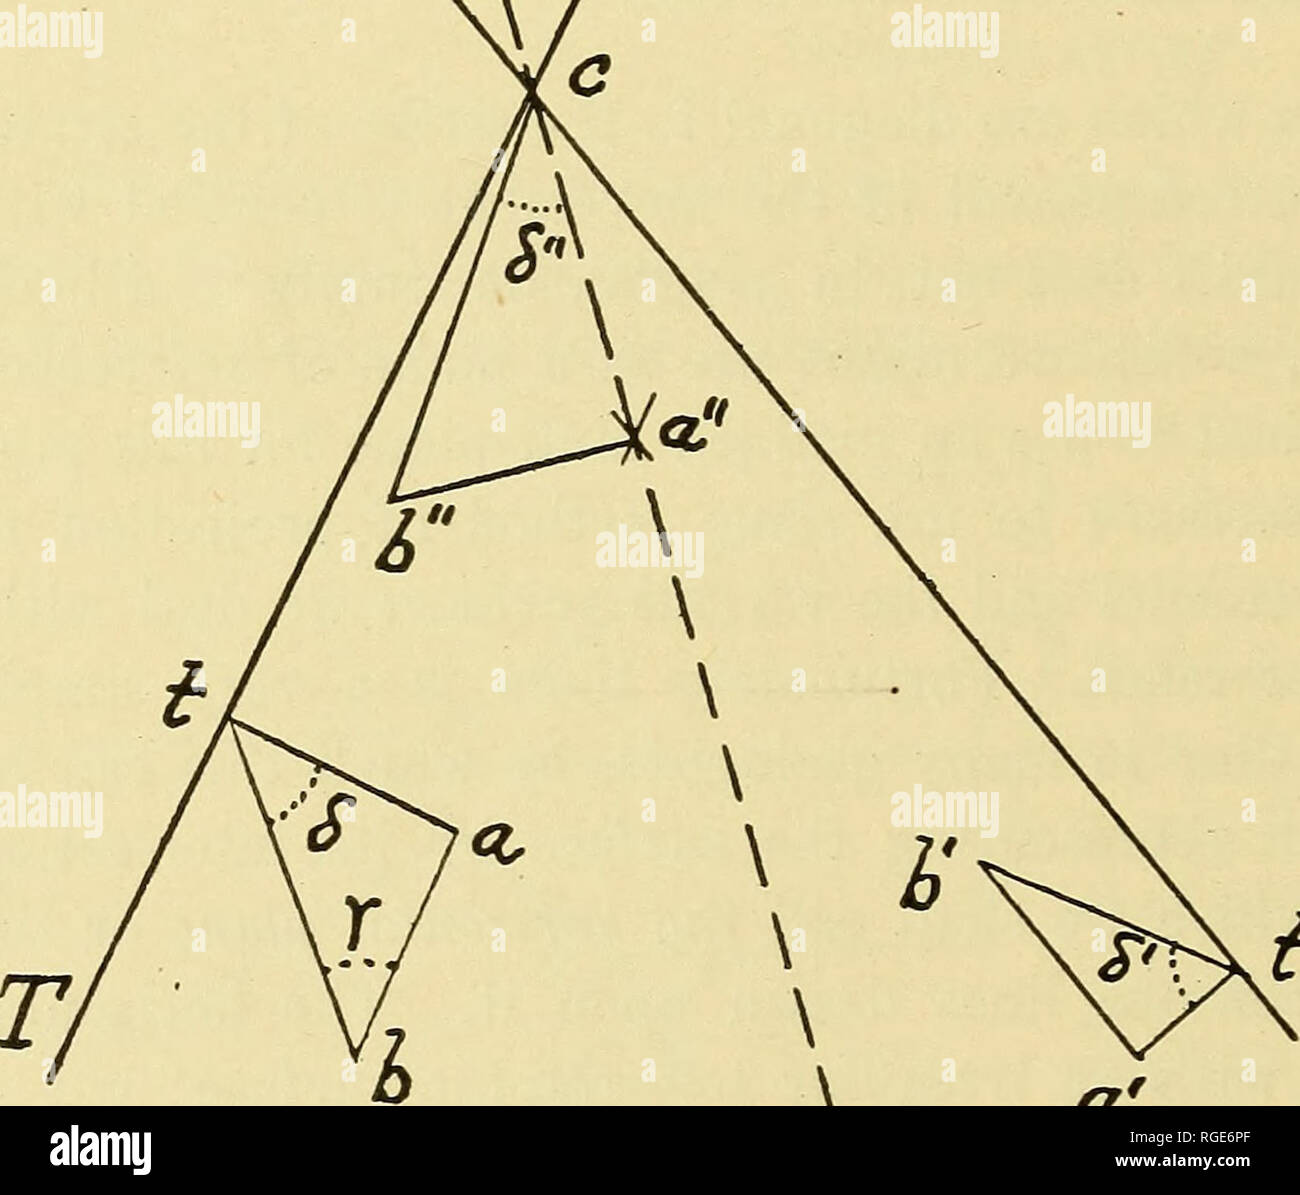 . Bulletin of the Geological Society of America. Geology. 174 H. F. REID GEOMETRY OF FAULTS ily be seen if we revolve the triangle about ta until it is vertical; tb will then lie in the plane under consideration. The triangle atb will be called the dip-triangle. From this triangle we see that ab is equal to ta tan 8; therefore with a table of natural tangents we can immediately determine the depth ab at any given distance, ta, from the trace; or we may deter- mine it graphically from the dip-triangle itself. We shall use a heavy line to represent the trace of a plane. Lines will be indicated b - Stock Image